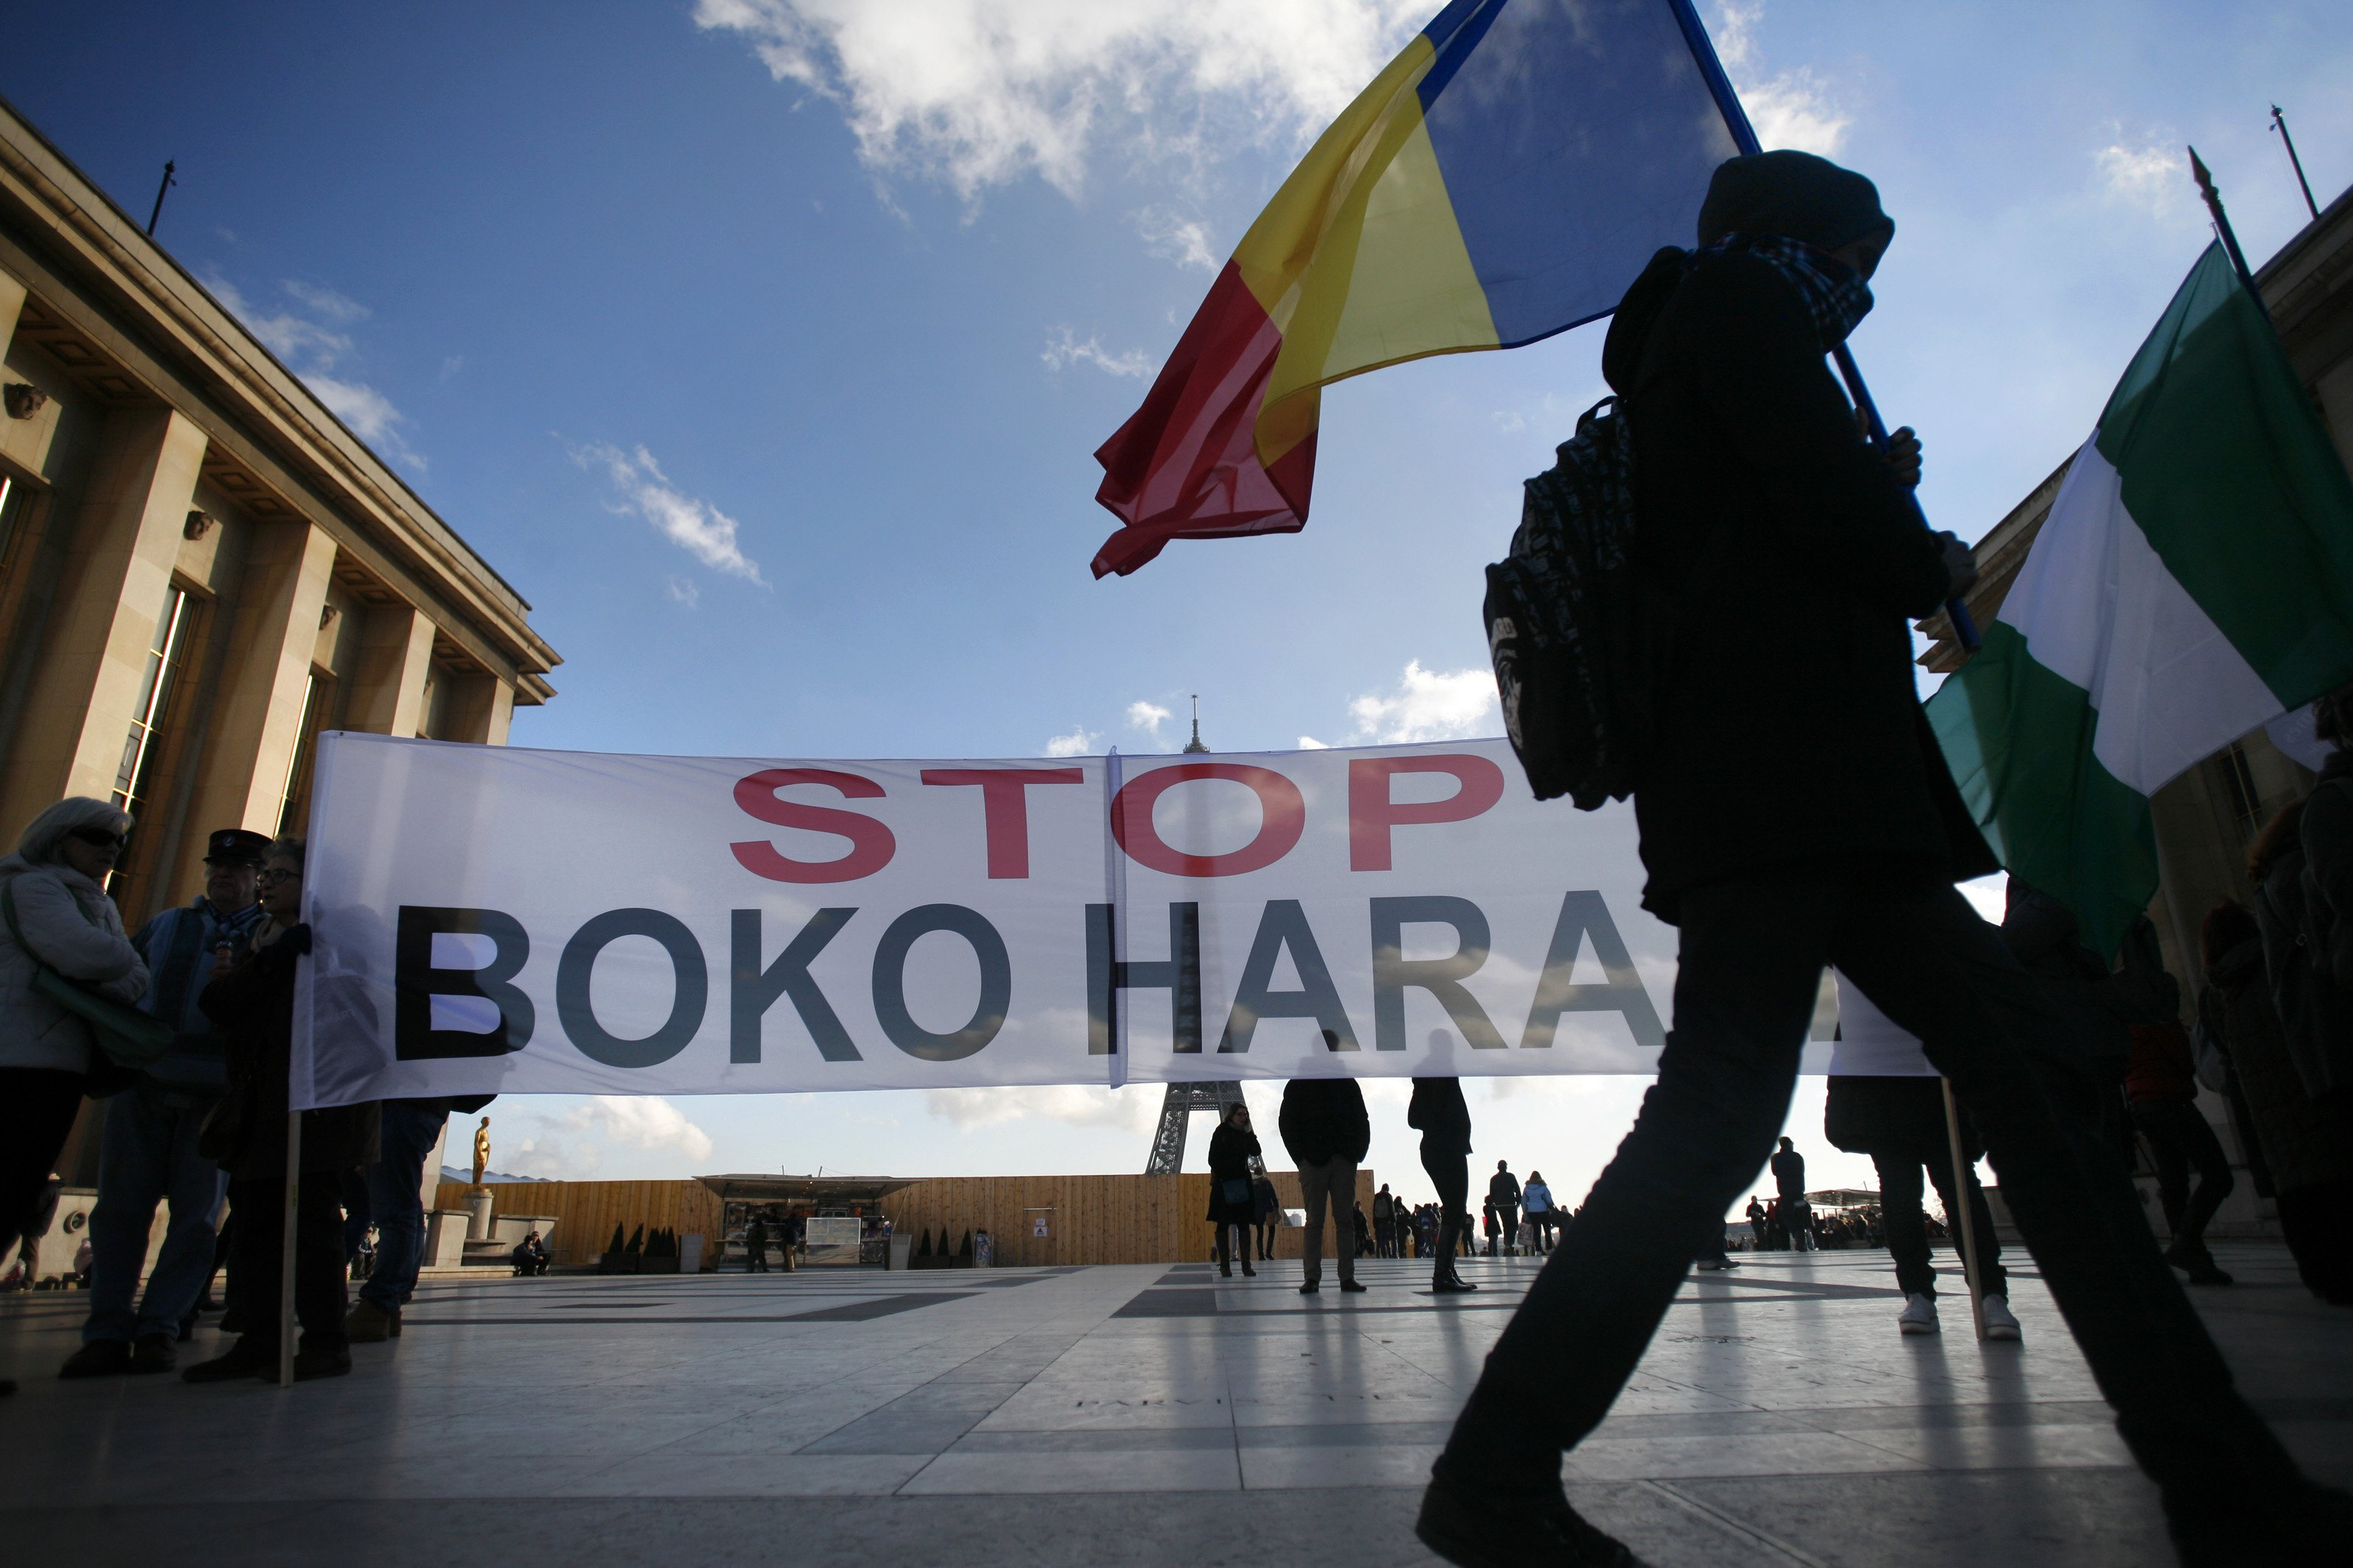 People gather against the Boko Haram attacks in Nigeria on Jan. 17, 2015 in Paris.